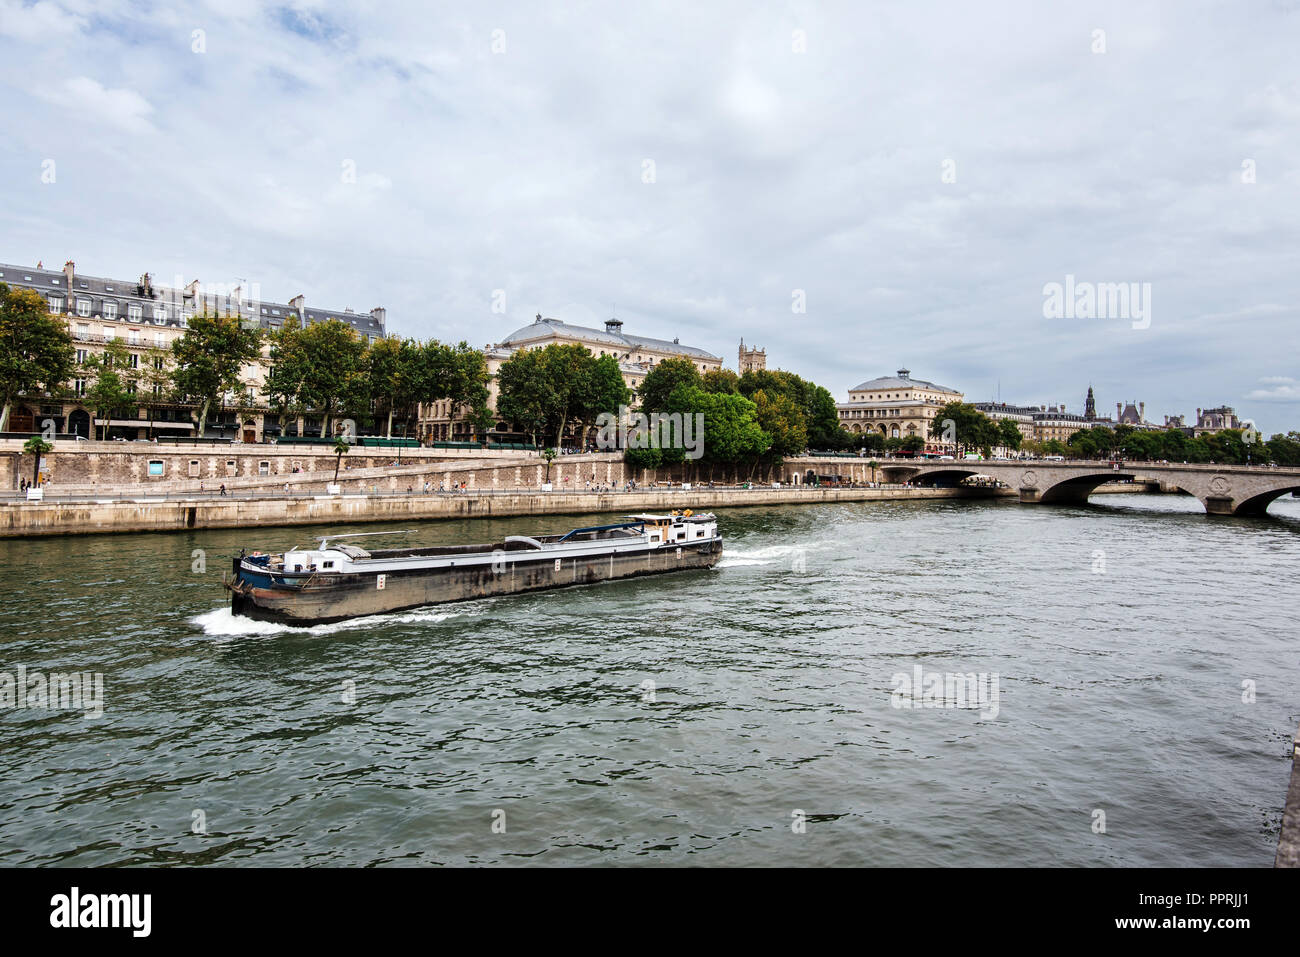 Cite Island View from Seine Riverside - Stock Image